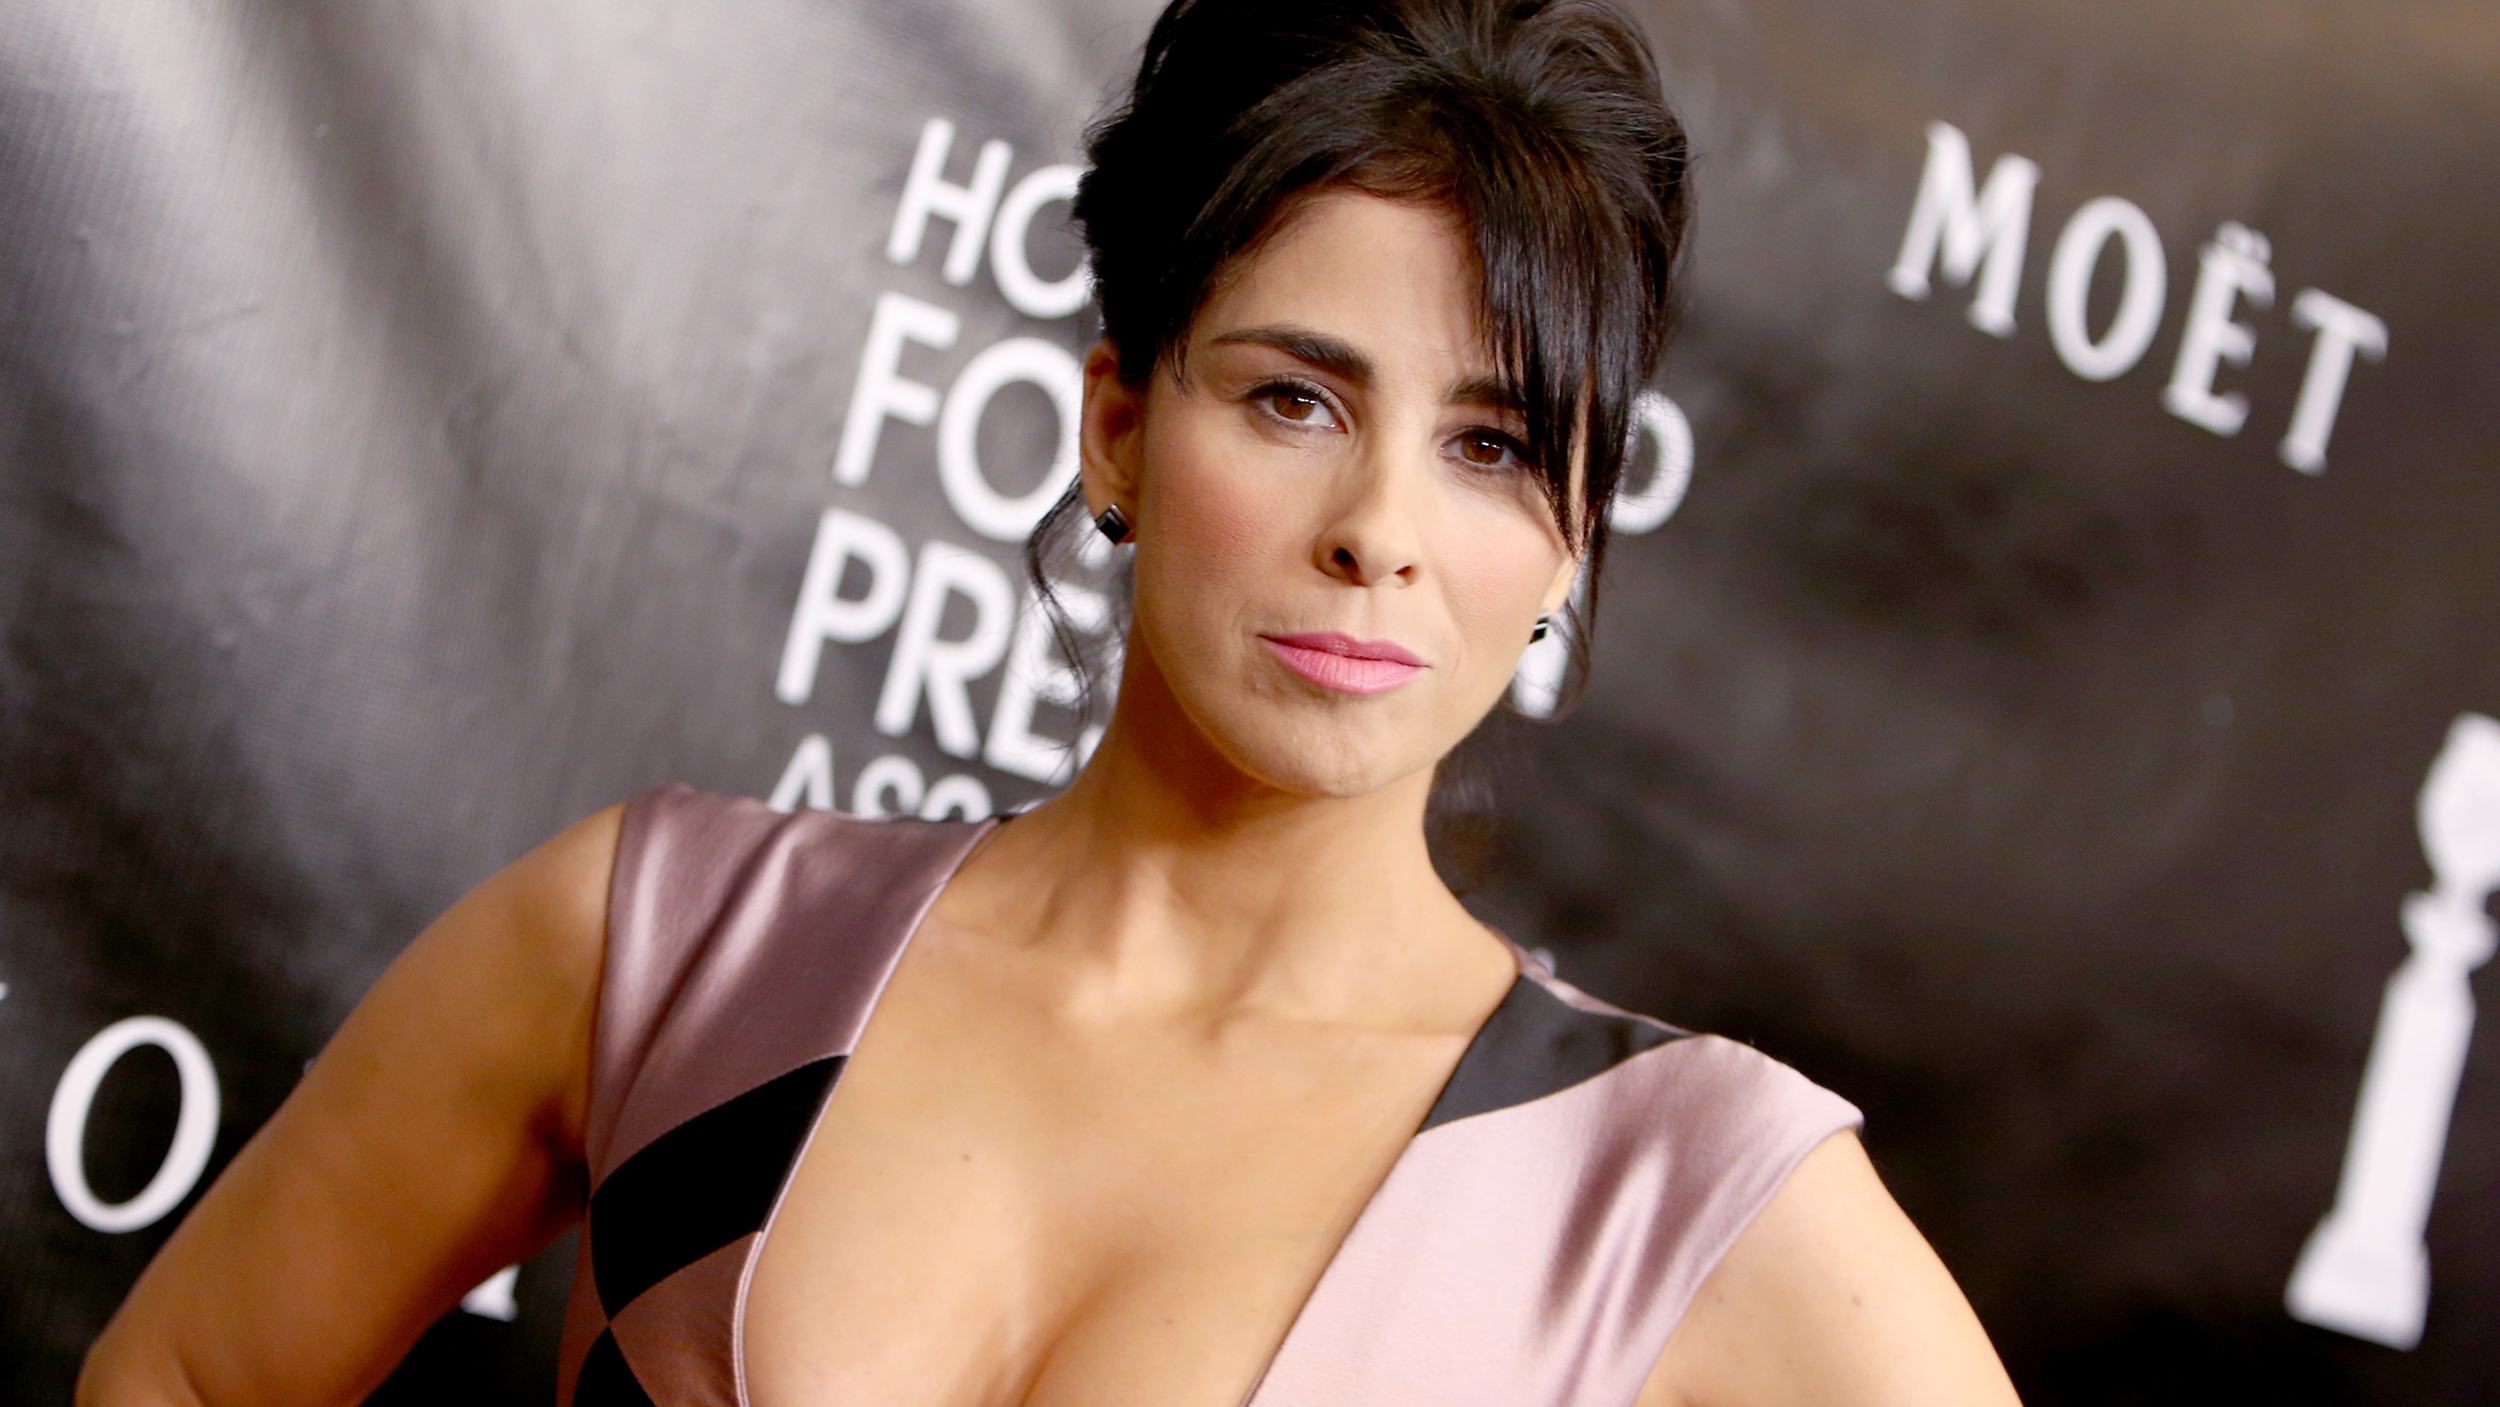 Fotos Sarah Silverman nudes (97 photos), Sexy, Sideboobs, Twitter, cleavage 2020